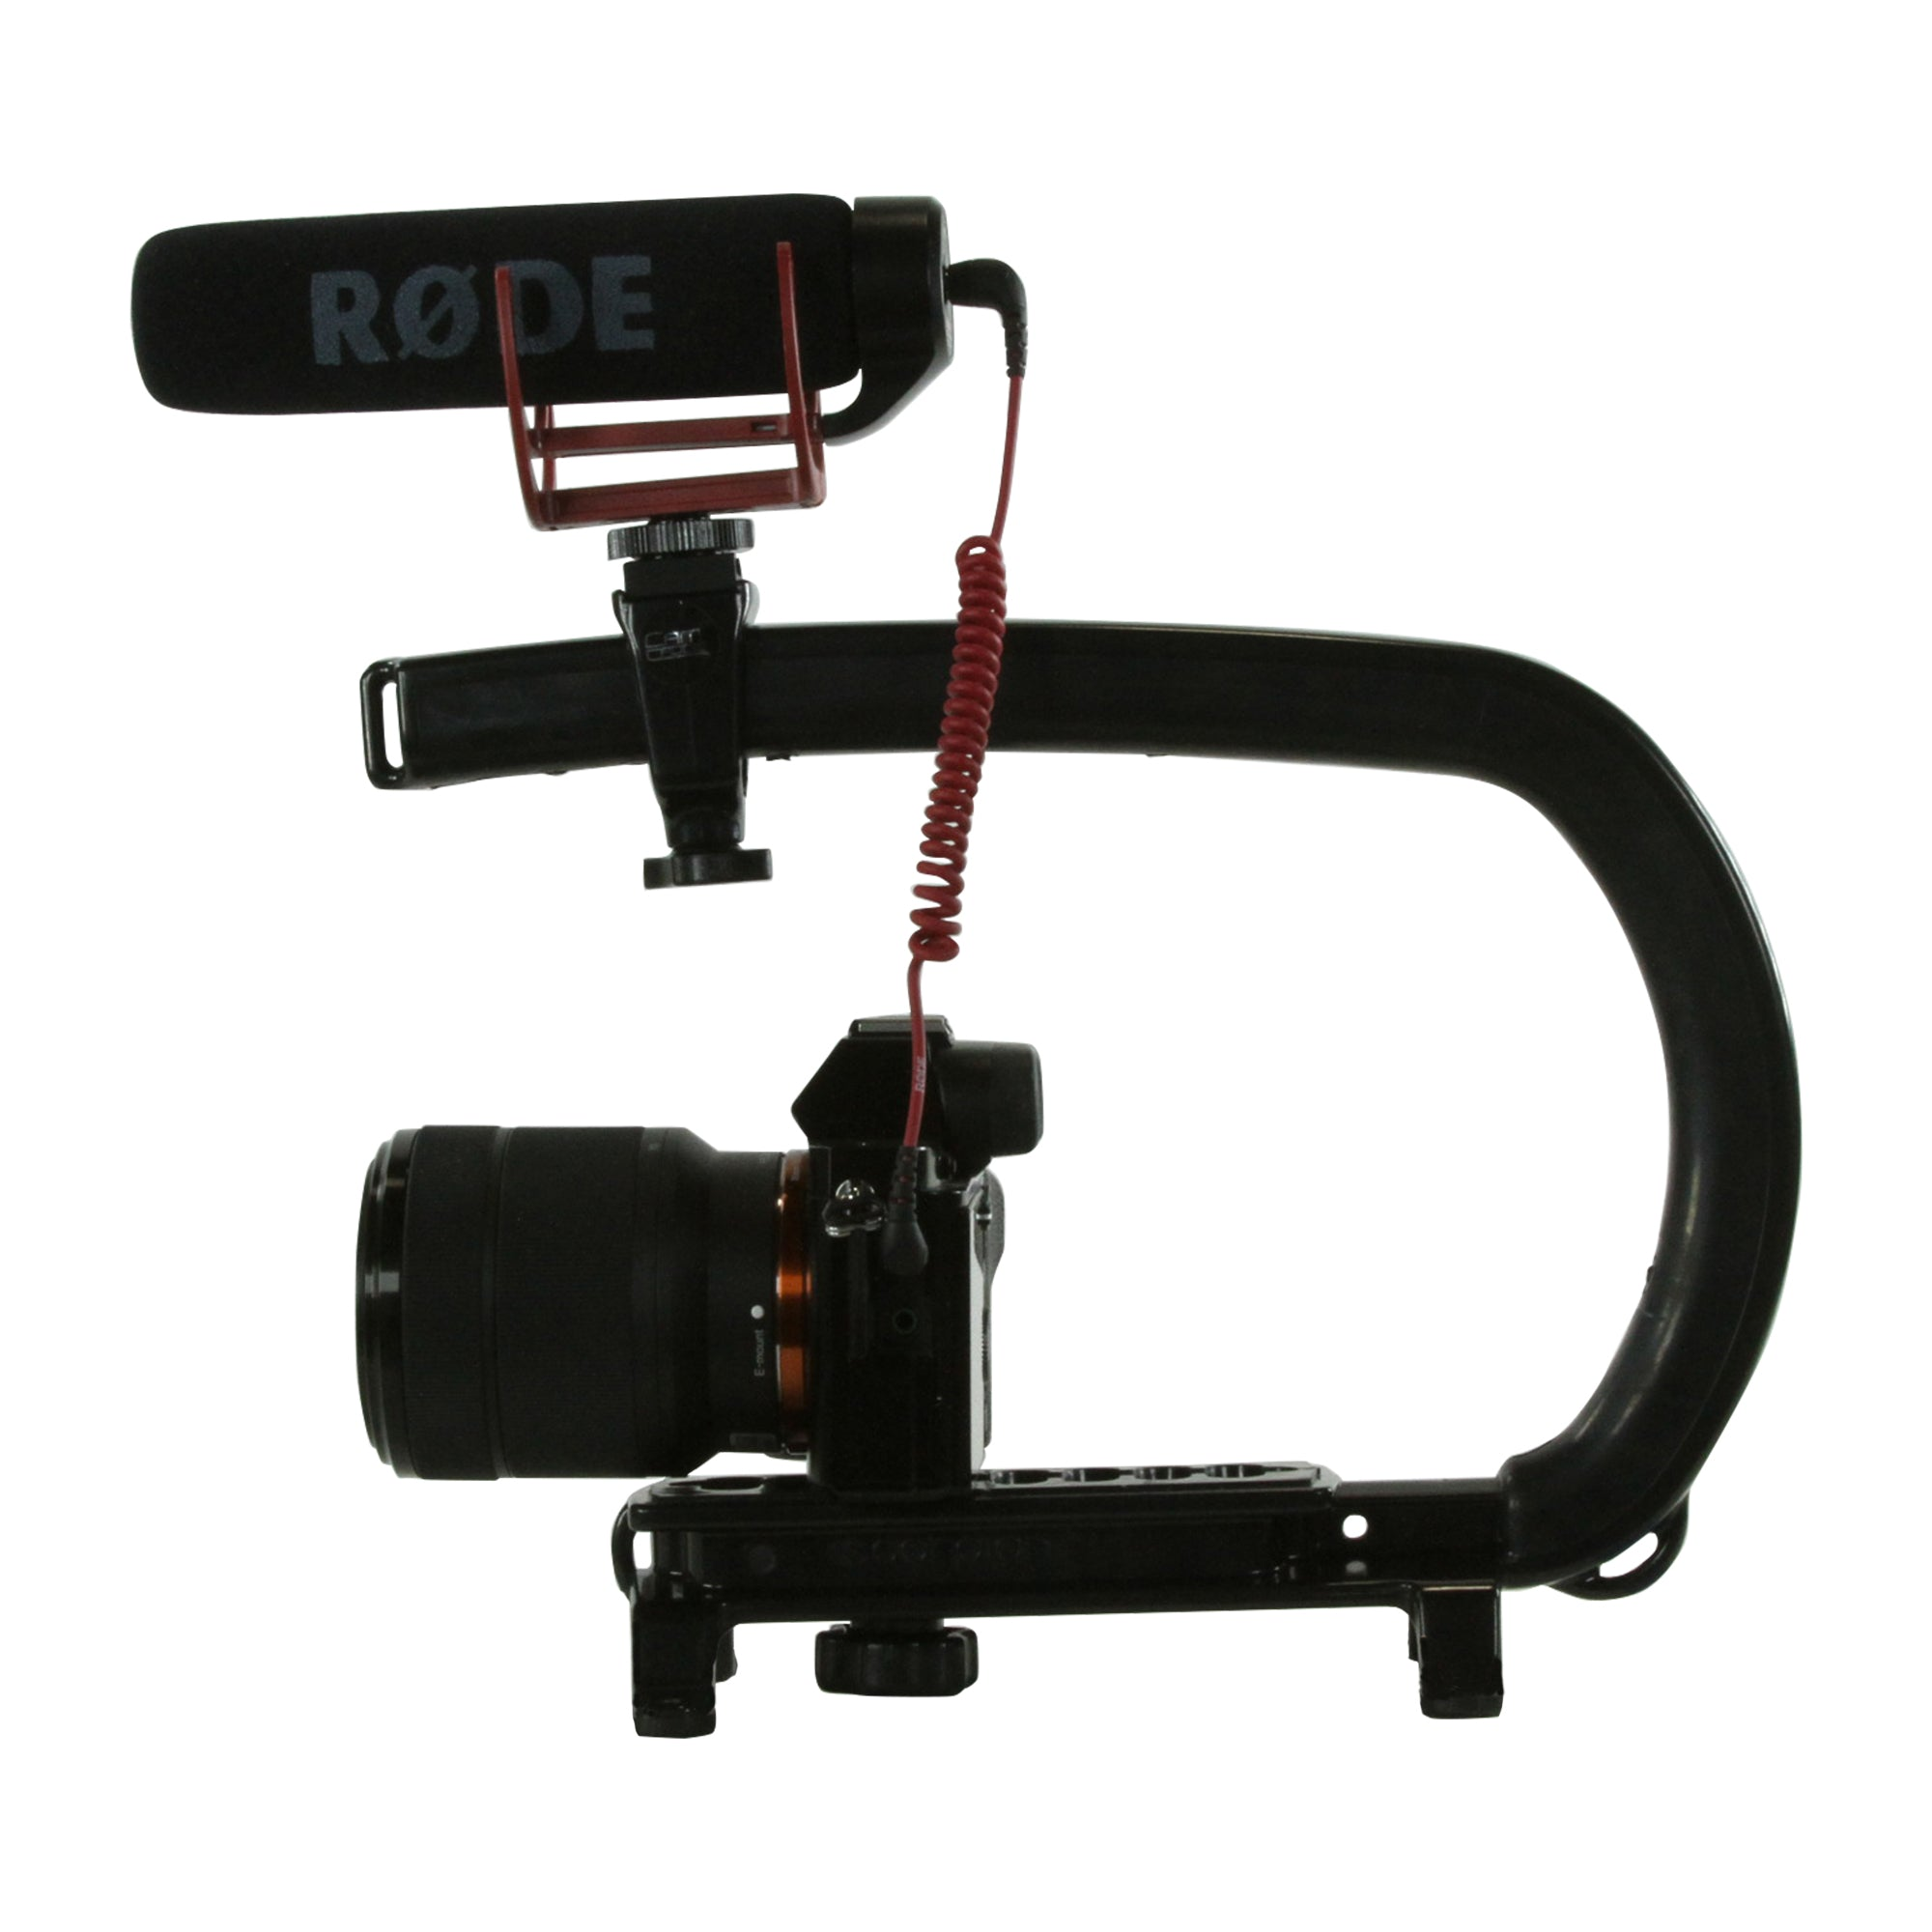 Cam Caddie Scorpion Skate Edition DSLR/GoPro/Mirrorless Camera Stabilizer Handle